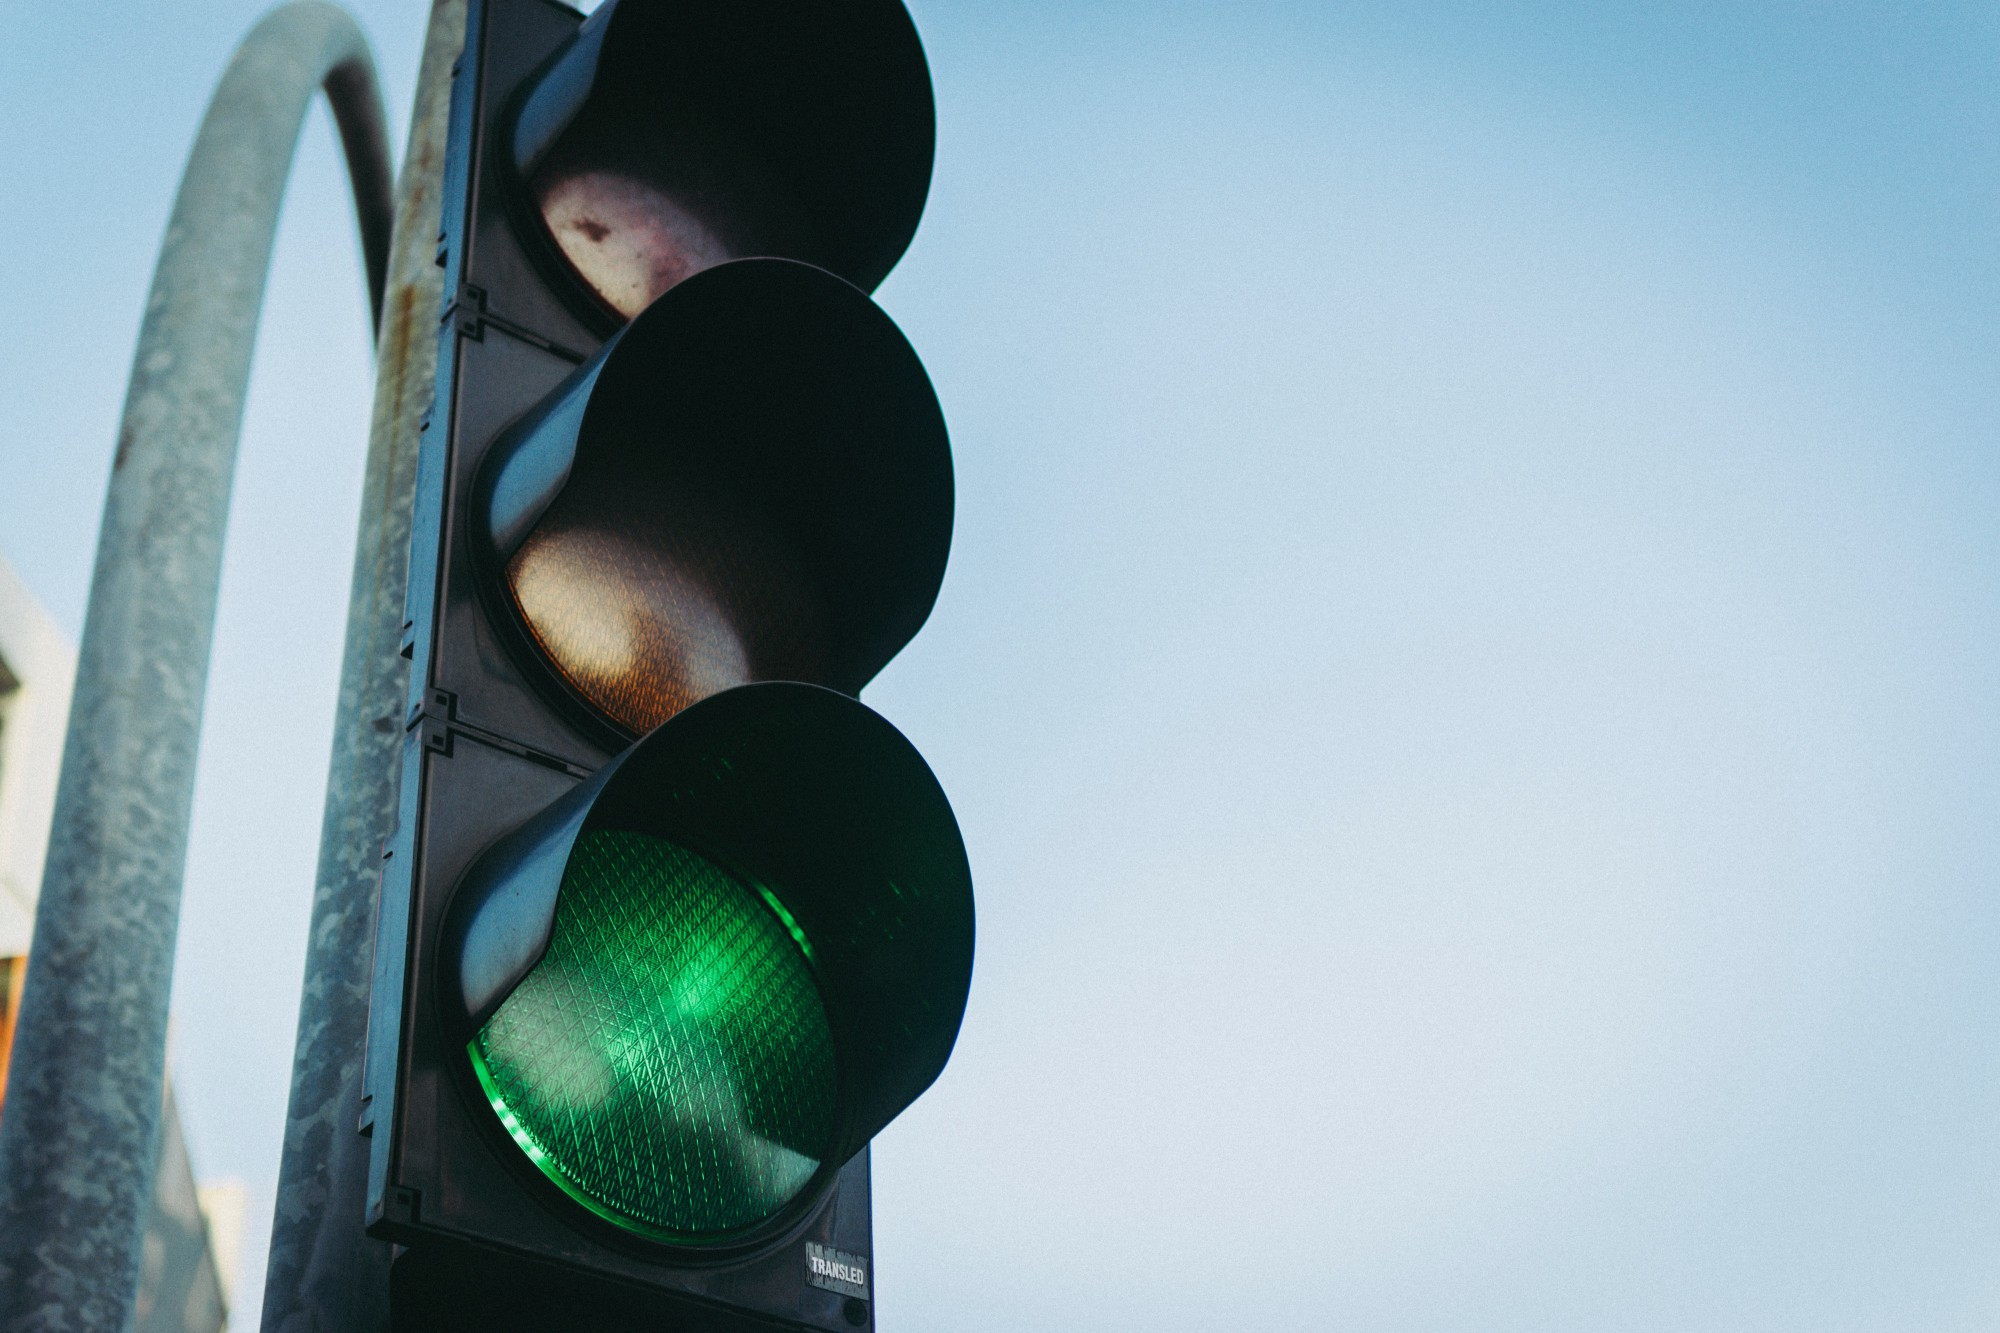 Image of a stoplight with the green light lit